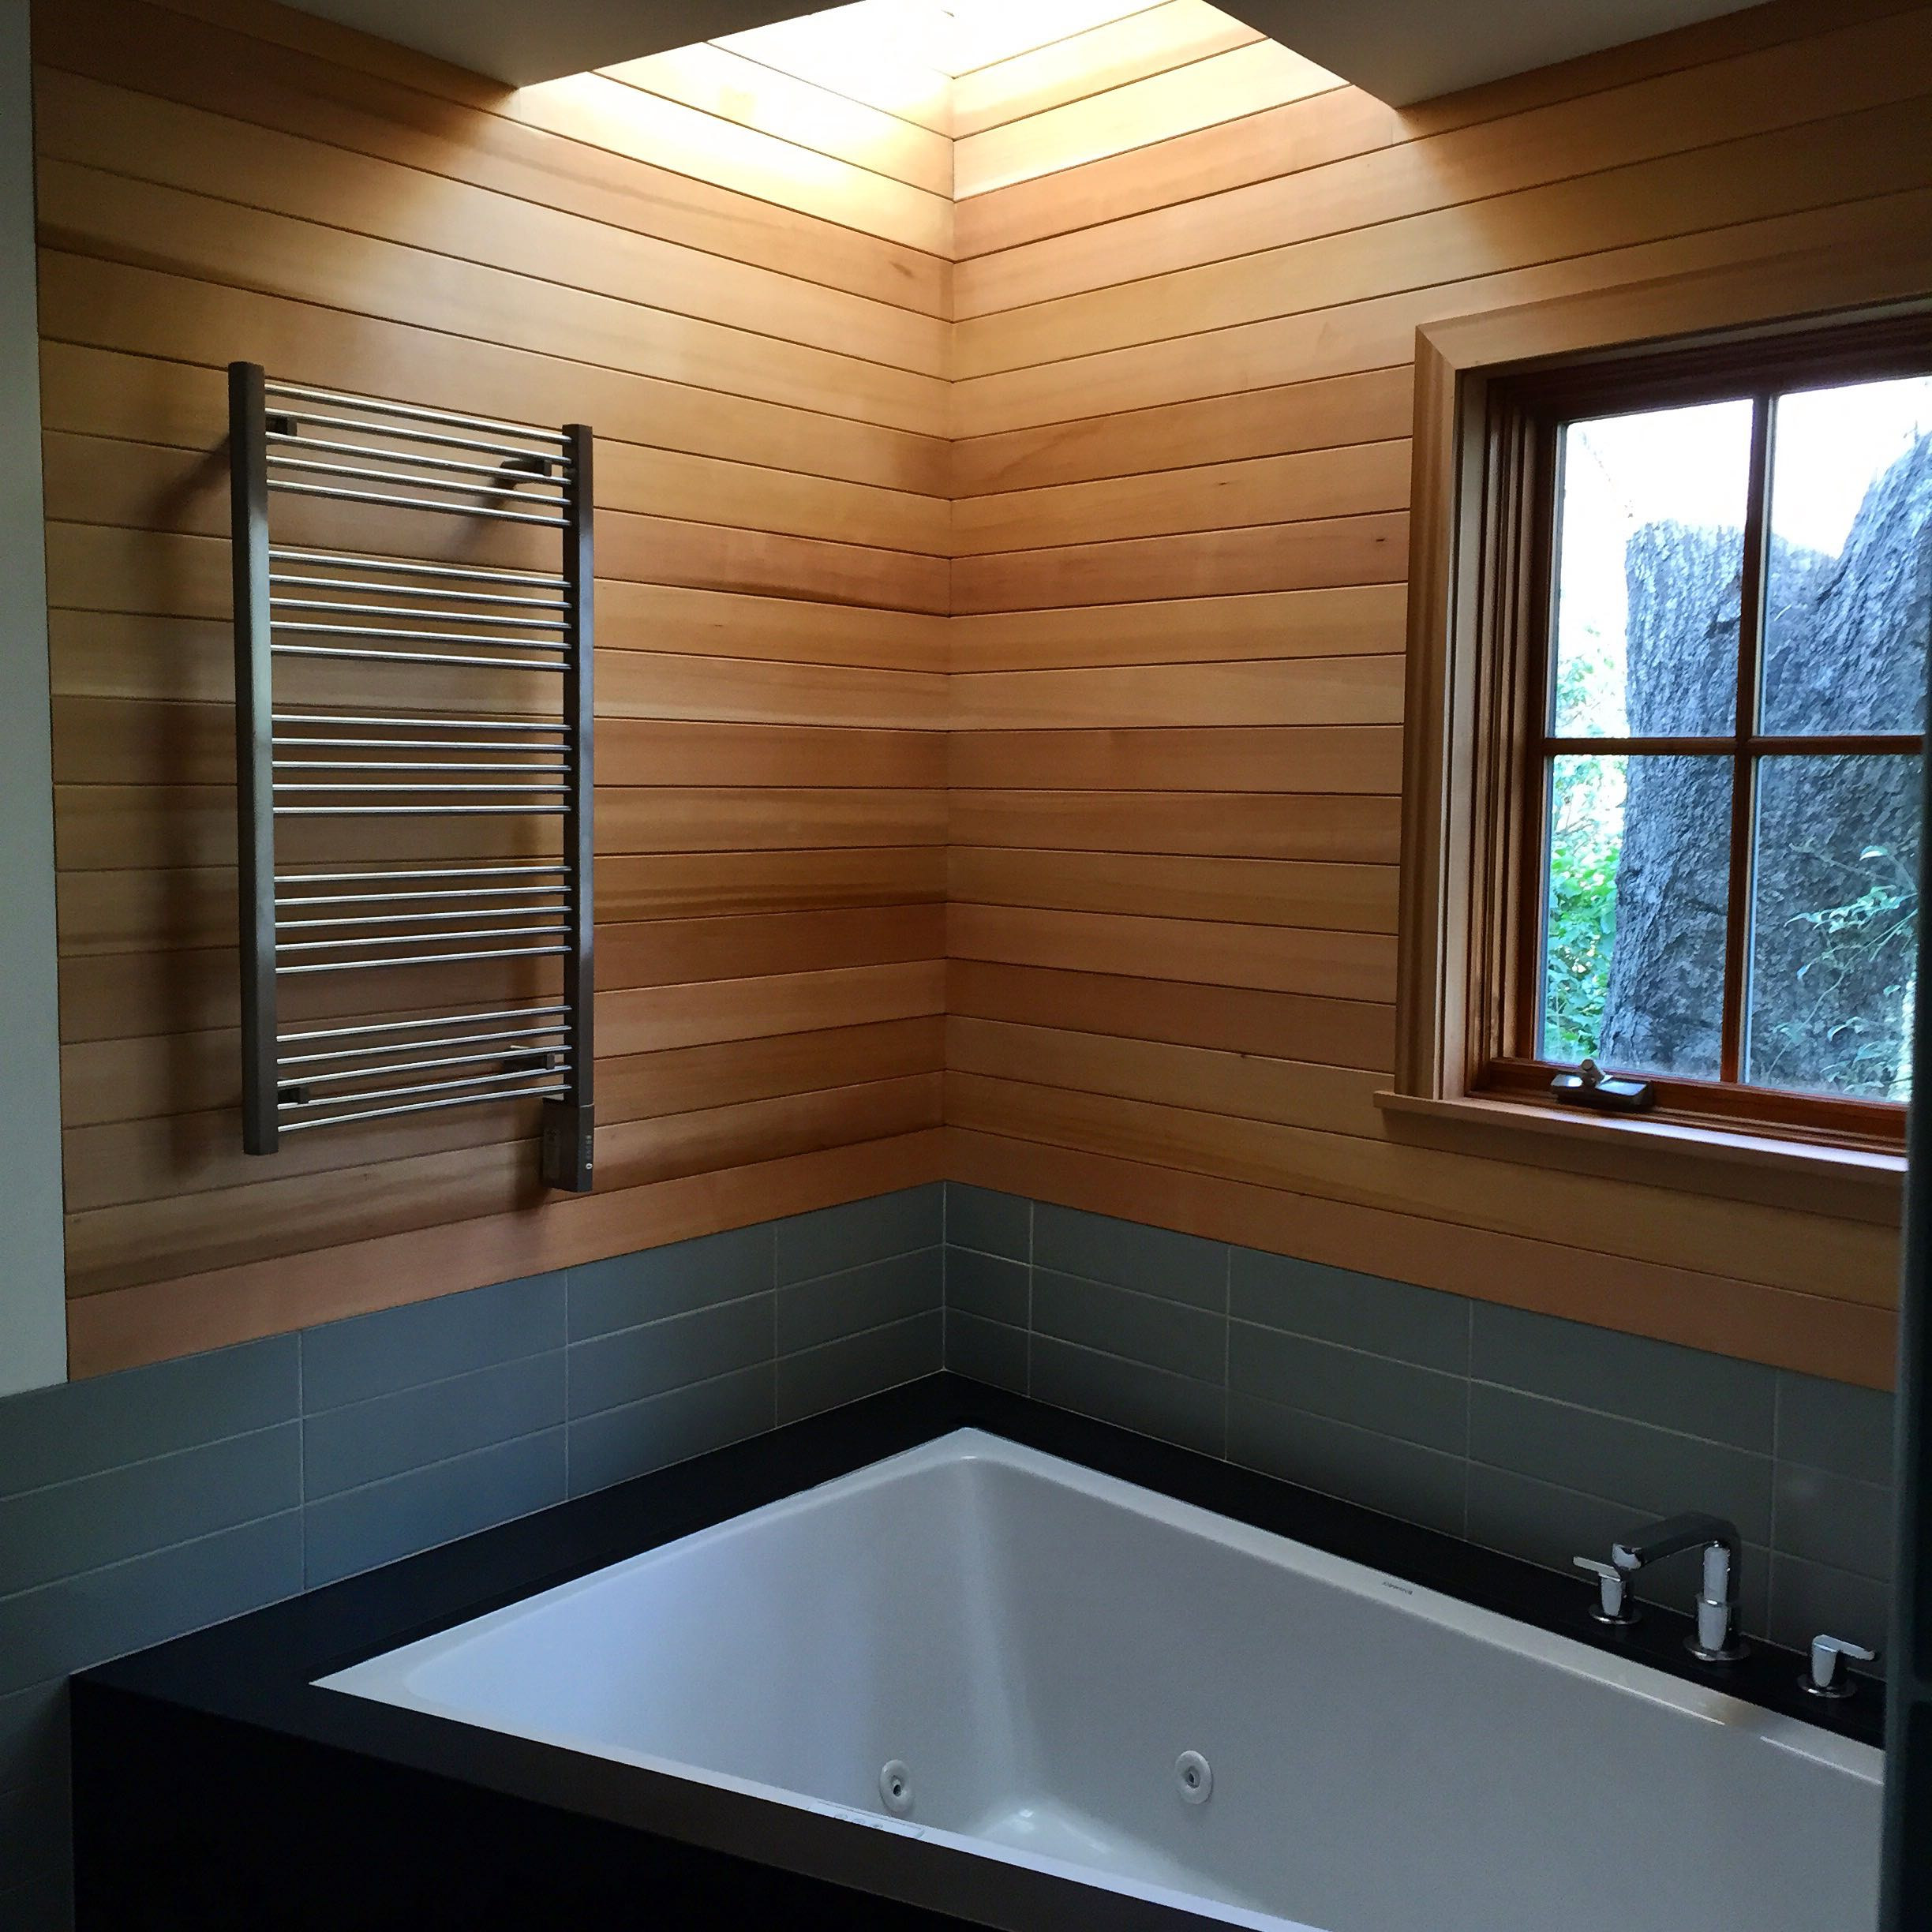 Wood Adds Warmth To This Bathroom Remodel Swan Building - Is it hard to remodel a bathroom